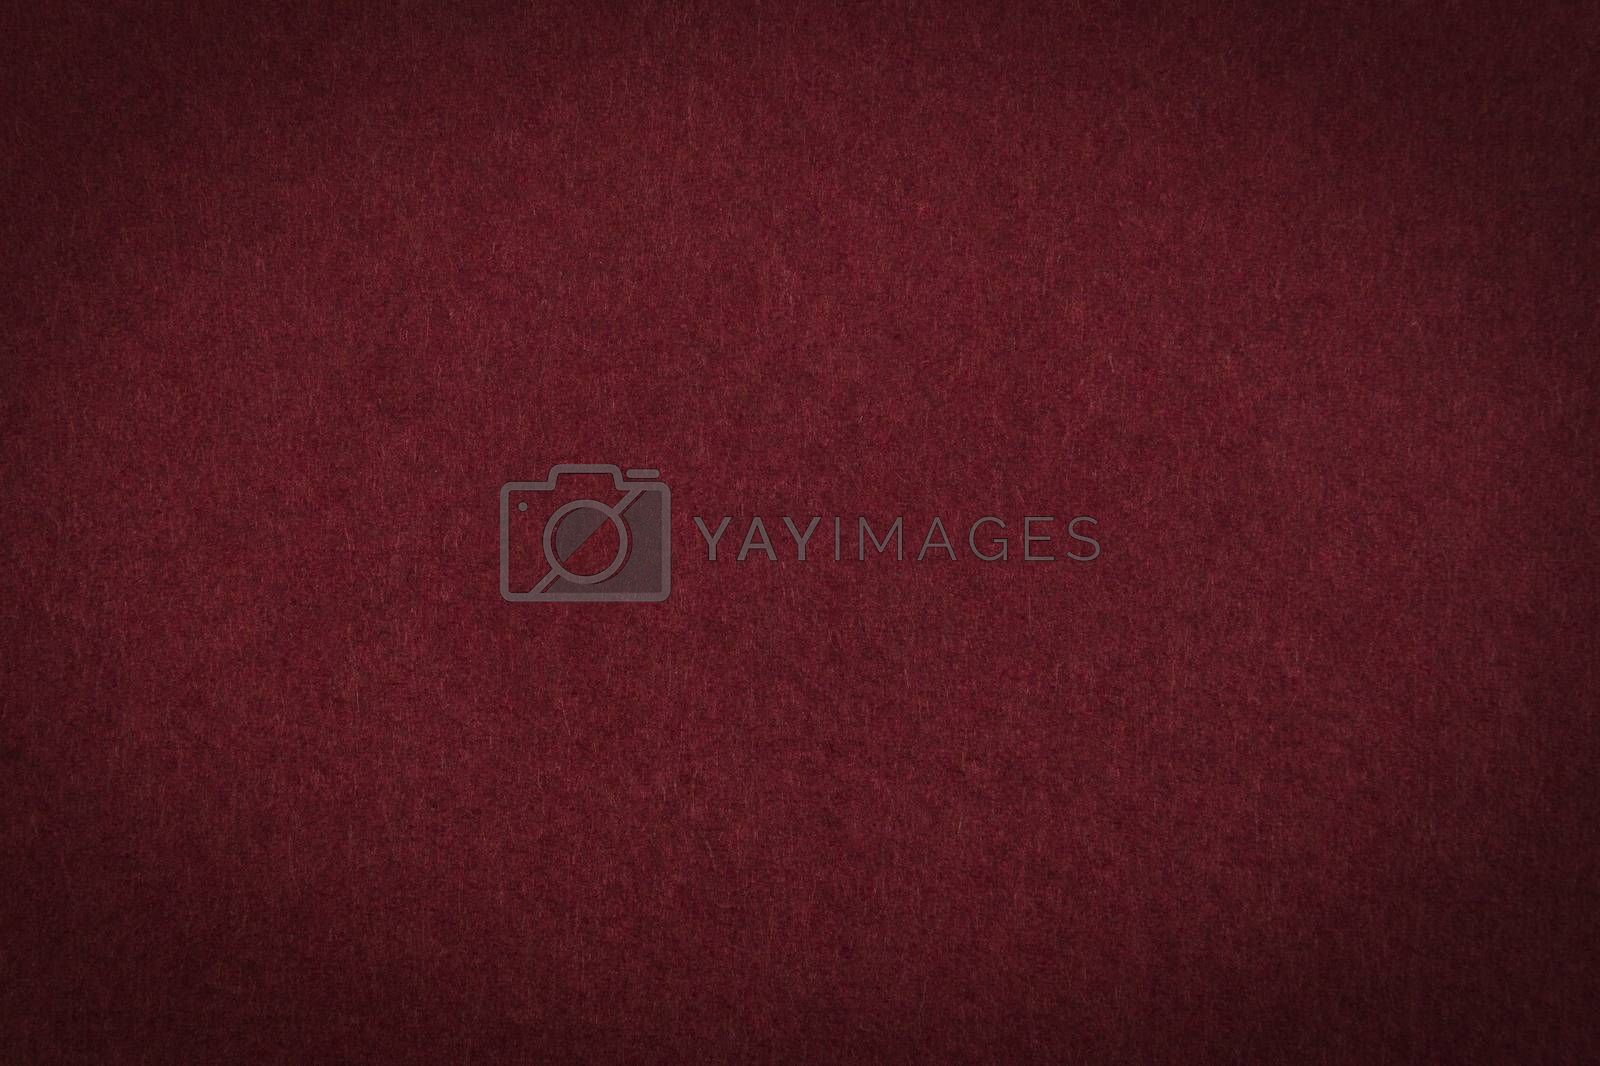 Royalty free image of Maroon paper background or texture by johan10